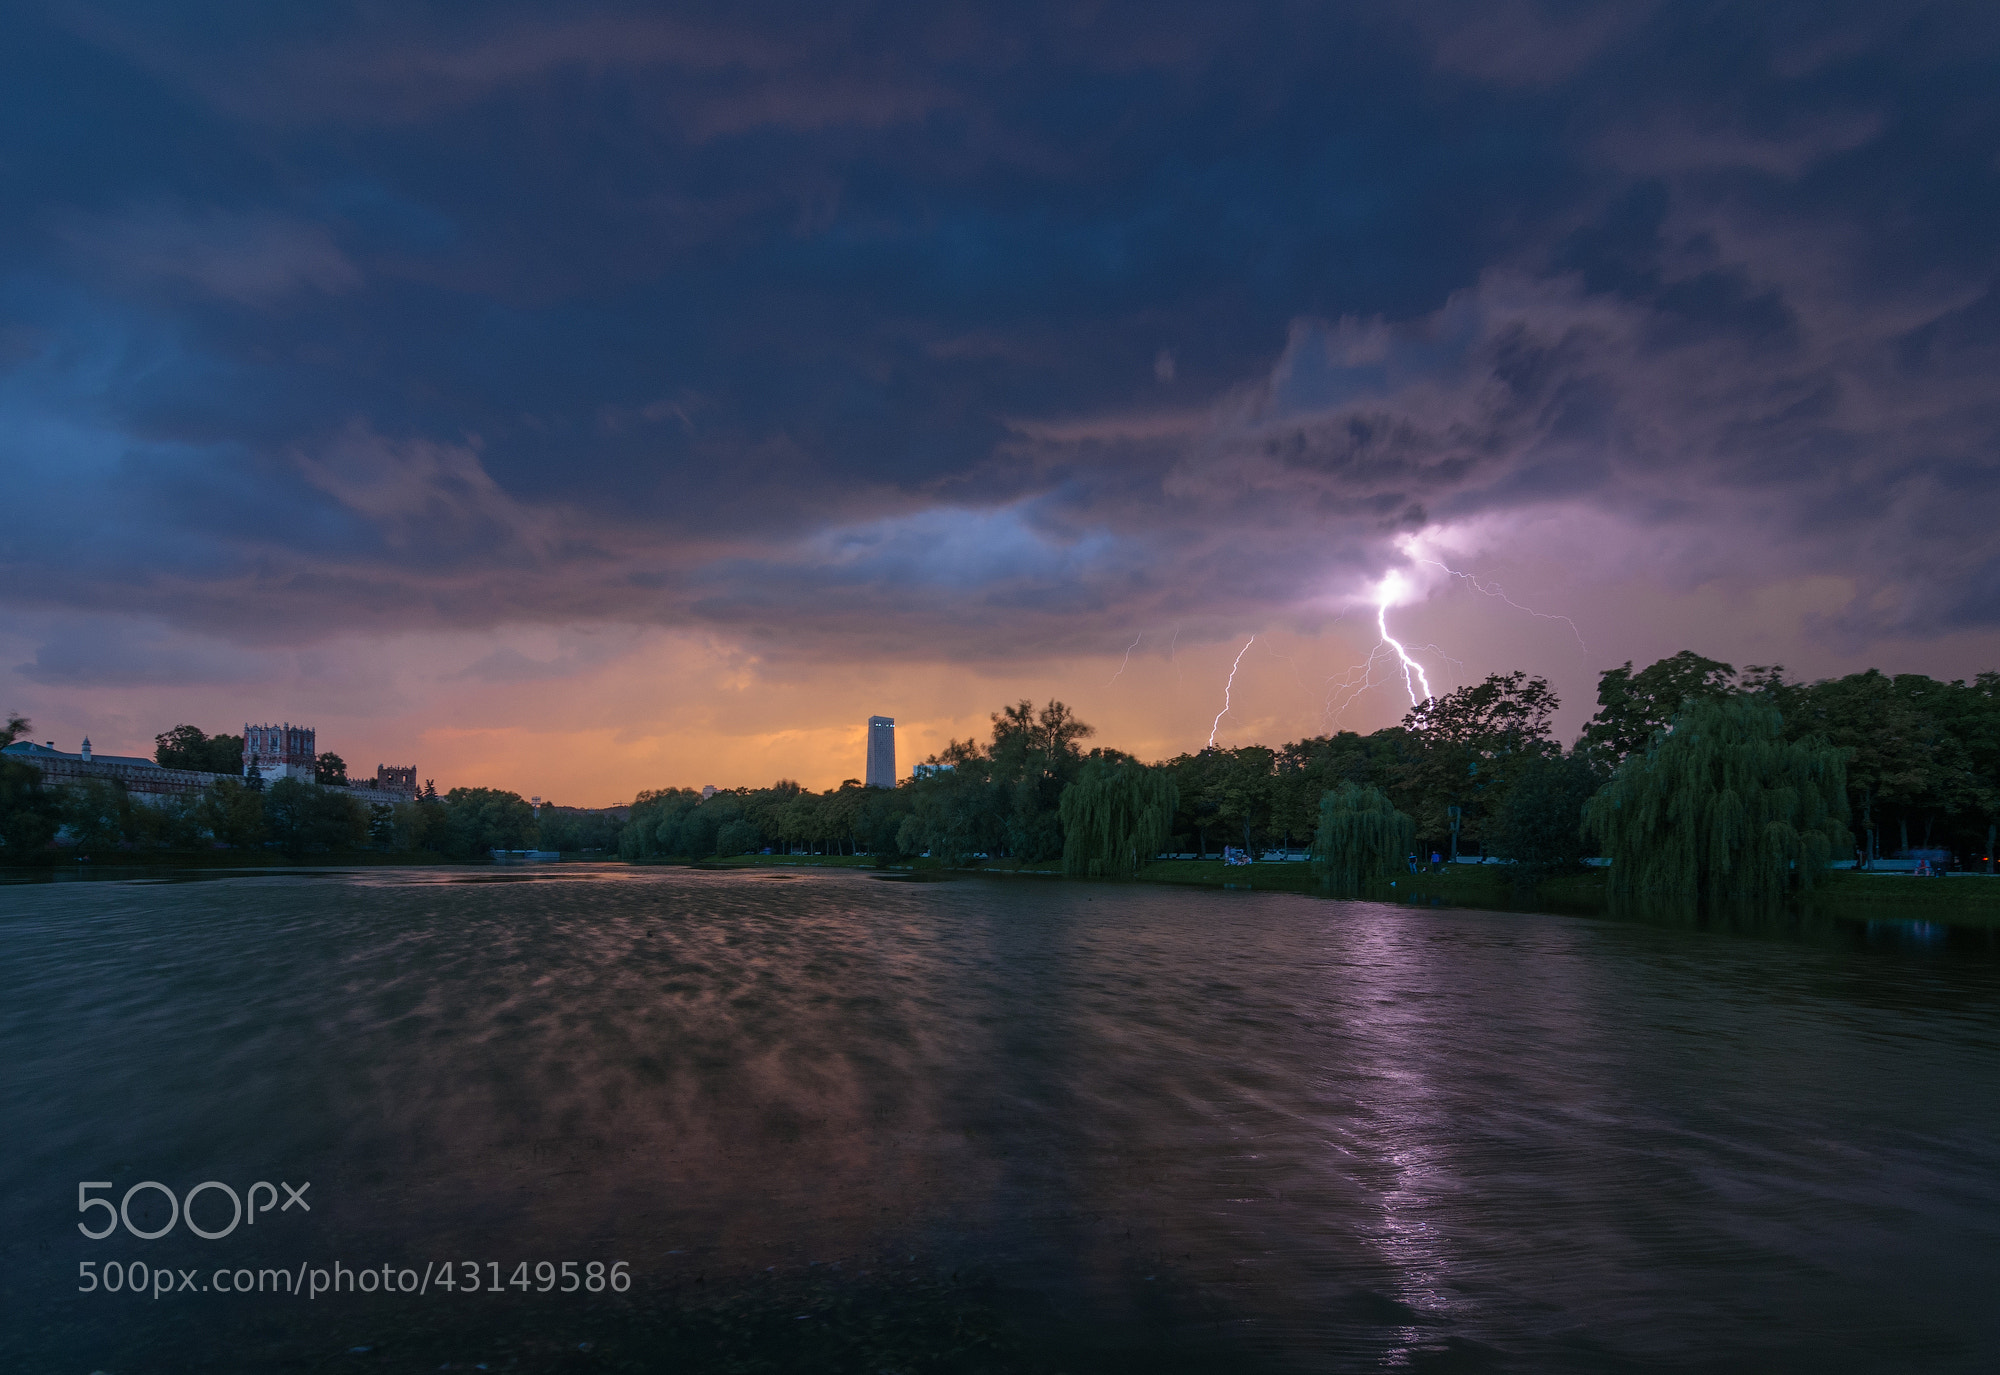 Photograph Moscow weather by Alexei Zaripov on 500px